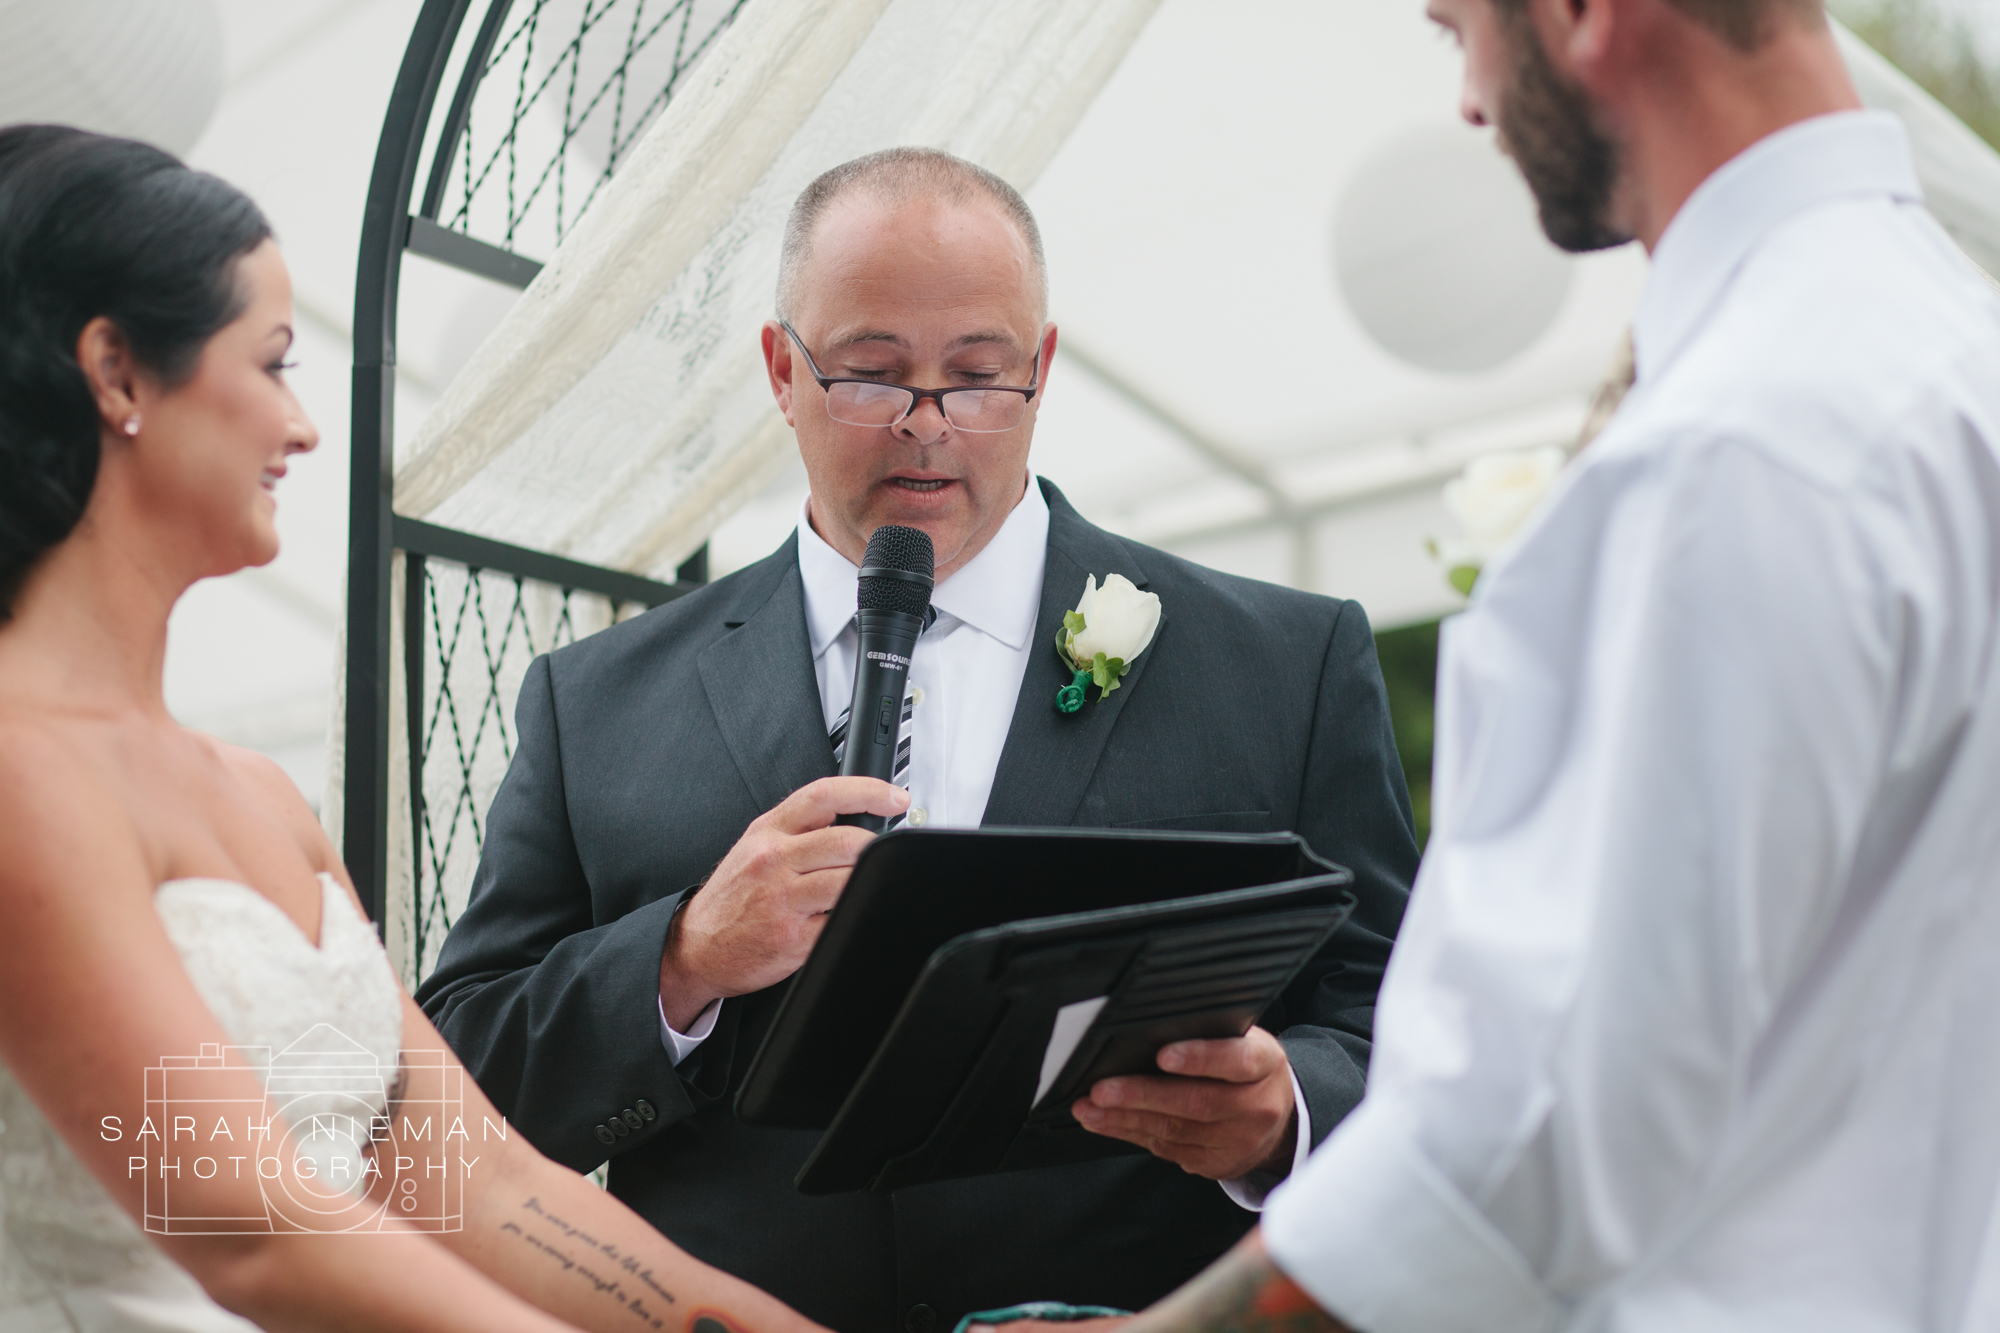 Matt's dad officiated the ceremony and did such a great job!